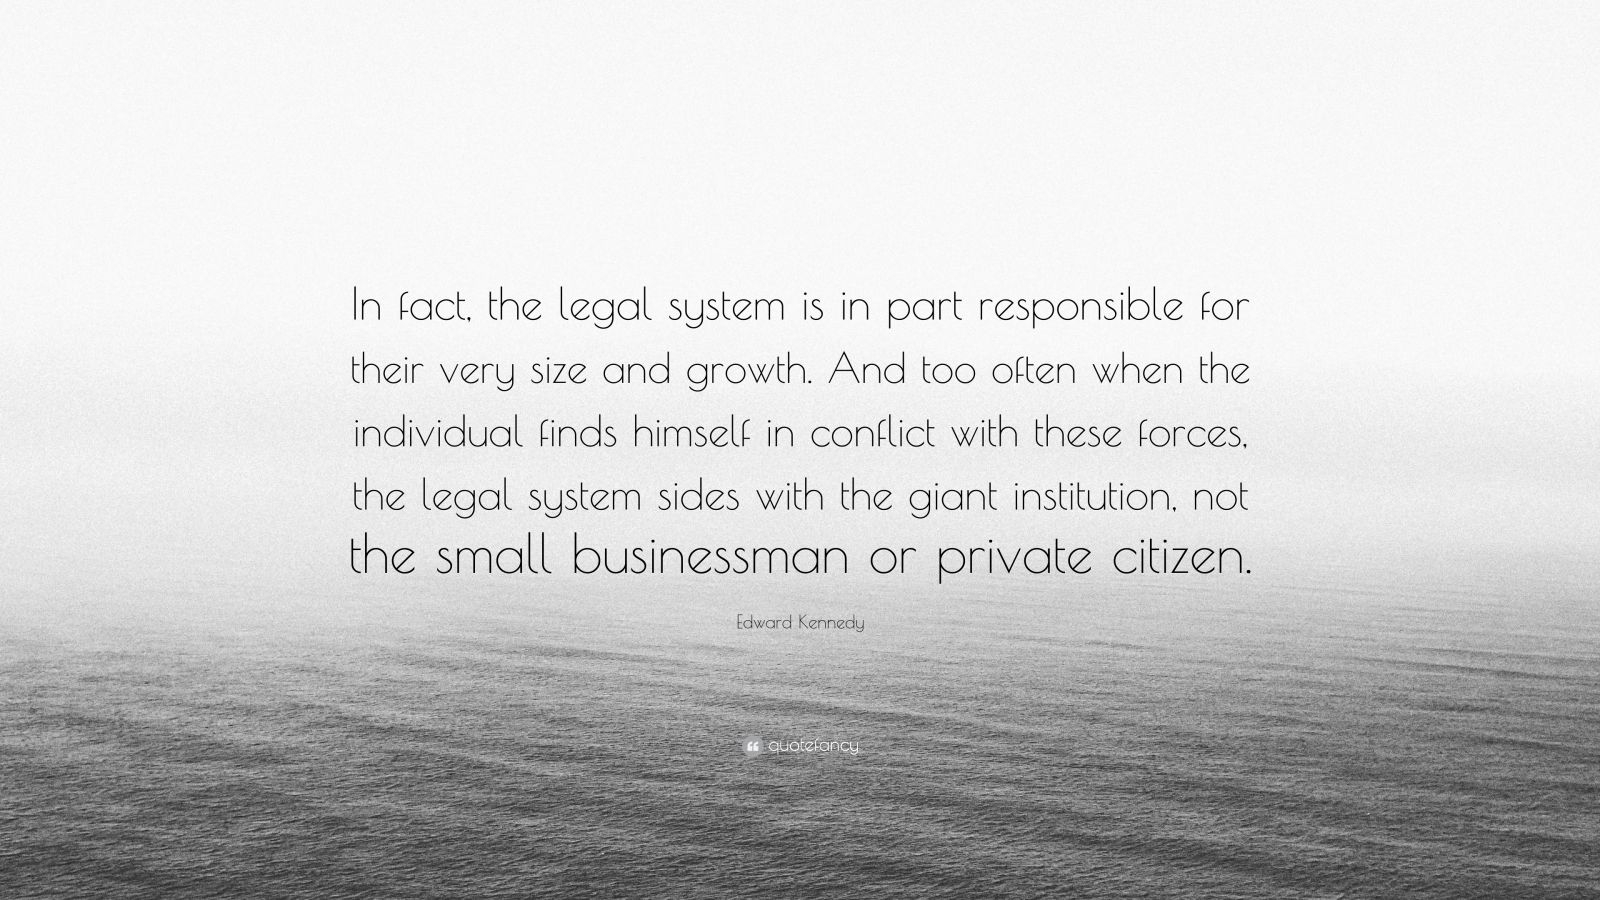 """Edward Kennedy Quote: """"In fact, the legal system is in part responsible for their very size and growth. And too often when the individual finds himself in conflict with these forces, the legal system sides with the giant institution, not the small businessman or private citizen."""""""